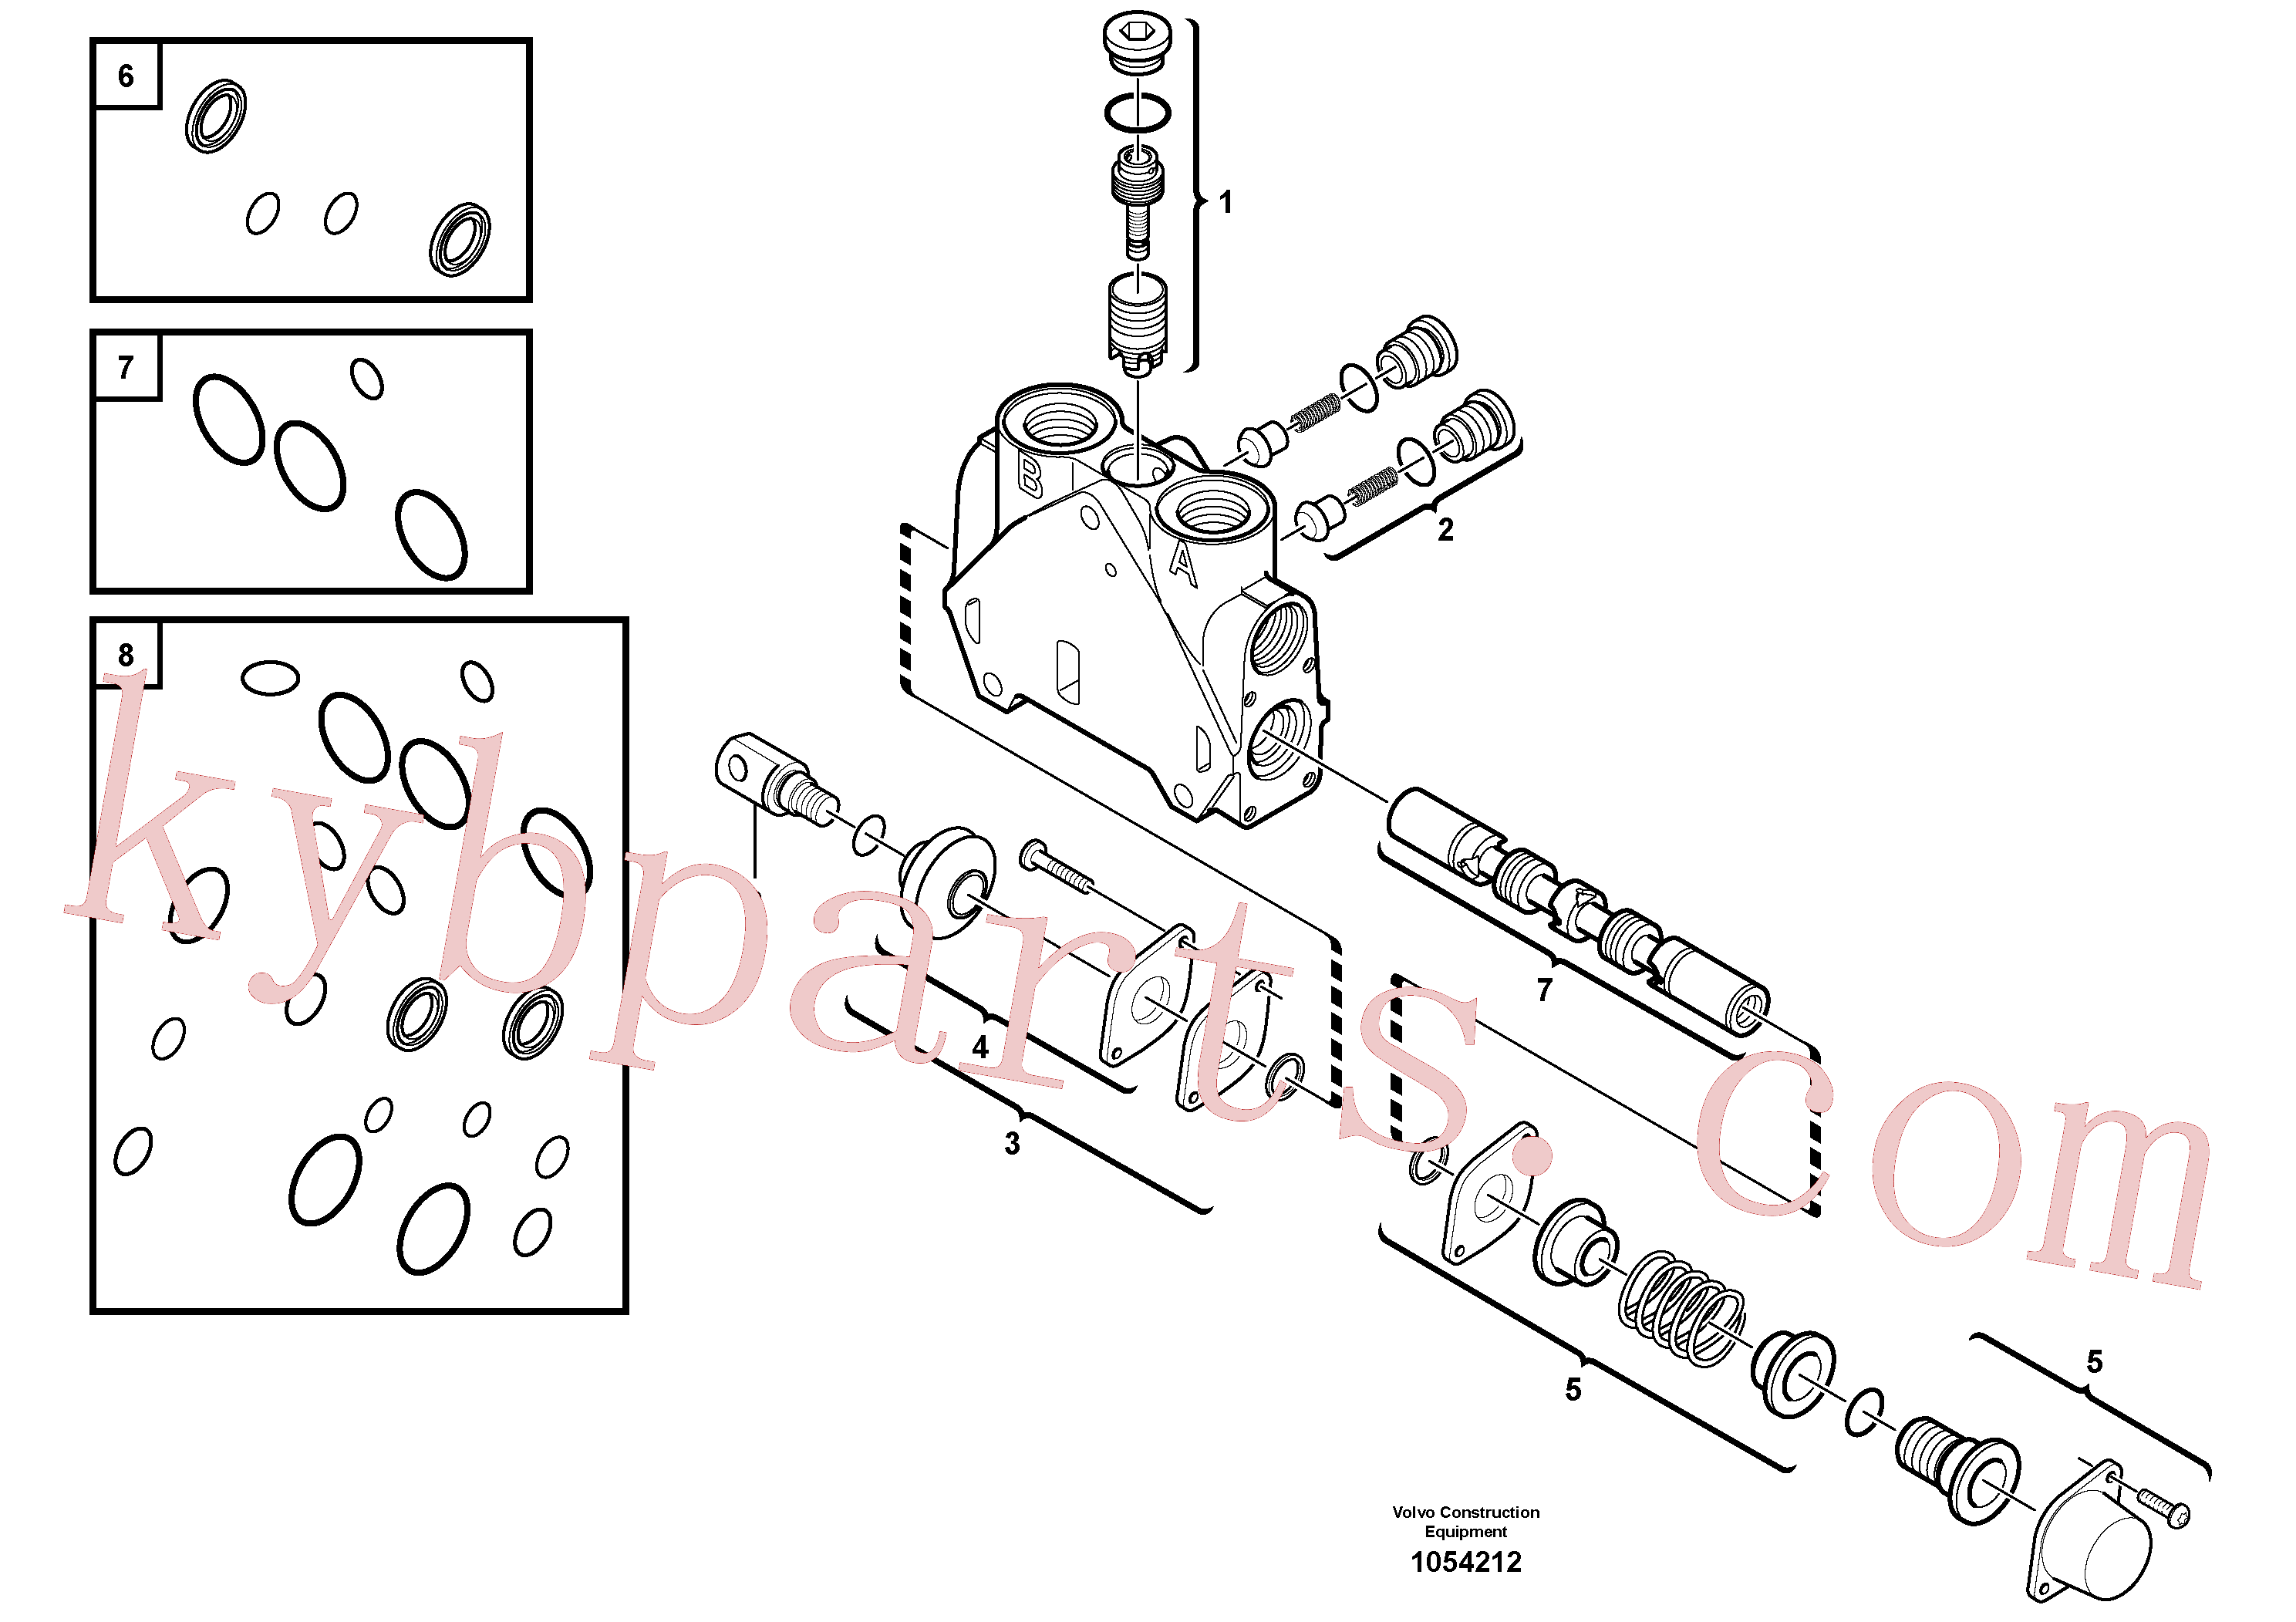 VOE11712580 for Volvo Valve section(1054212 assembly)